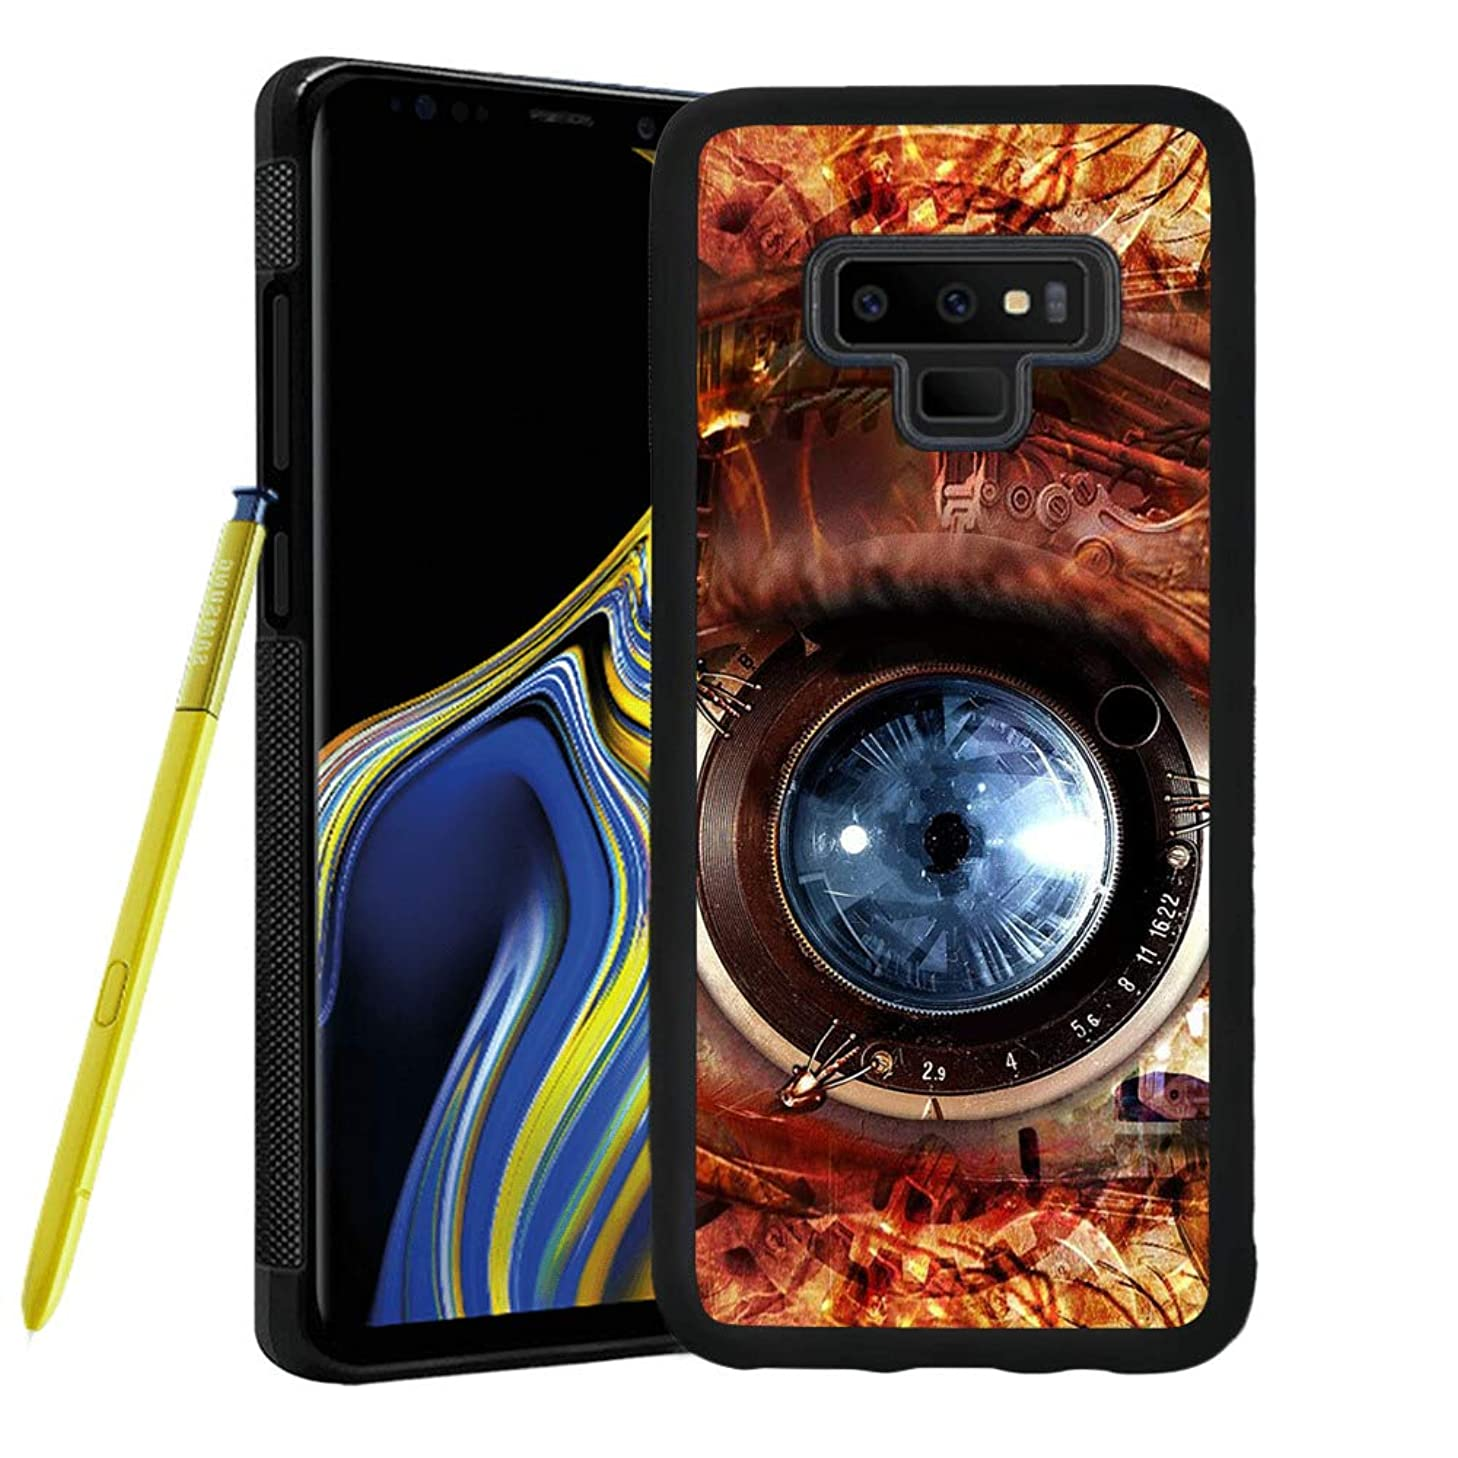 Samsung Galaxy Note 9 case Lens Full Body Case Cover Screen Protector Heavy Duty Protection case Shockproof case for Samsung Galaxy Note 9